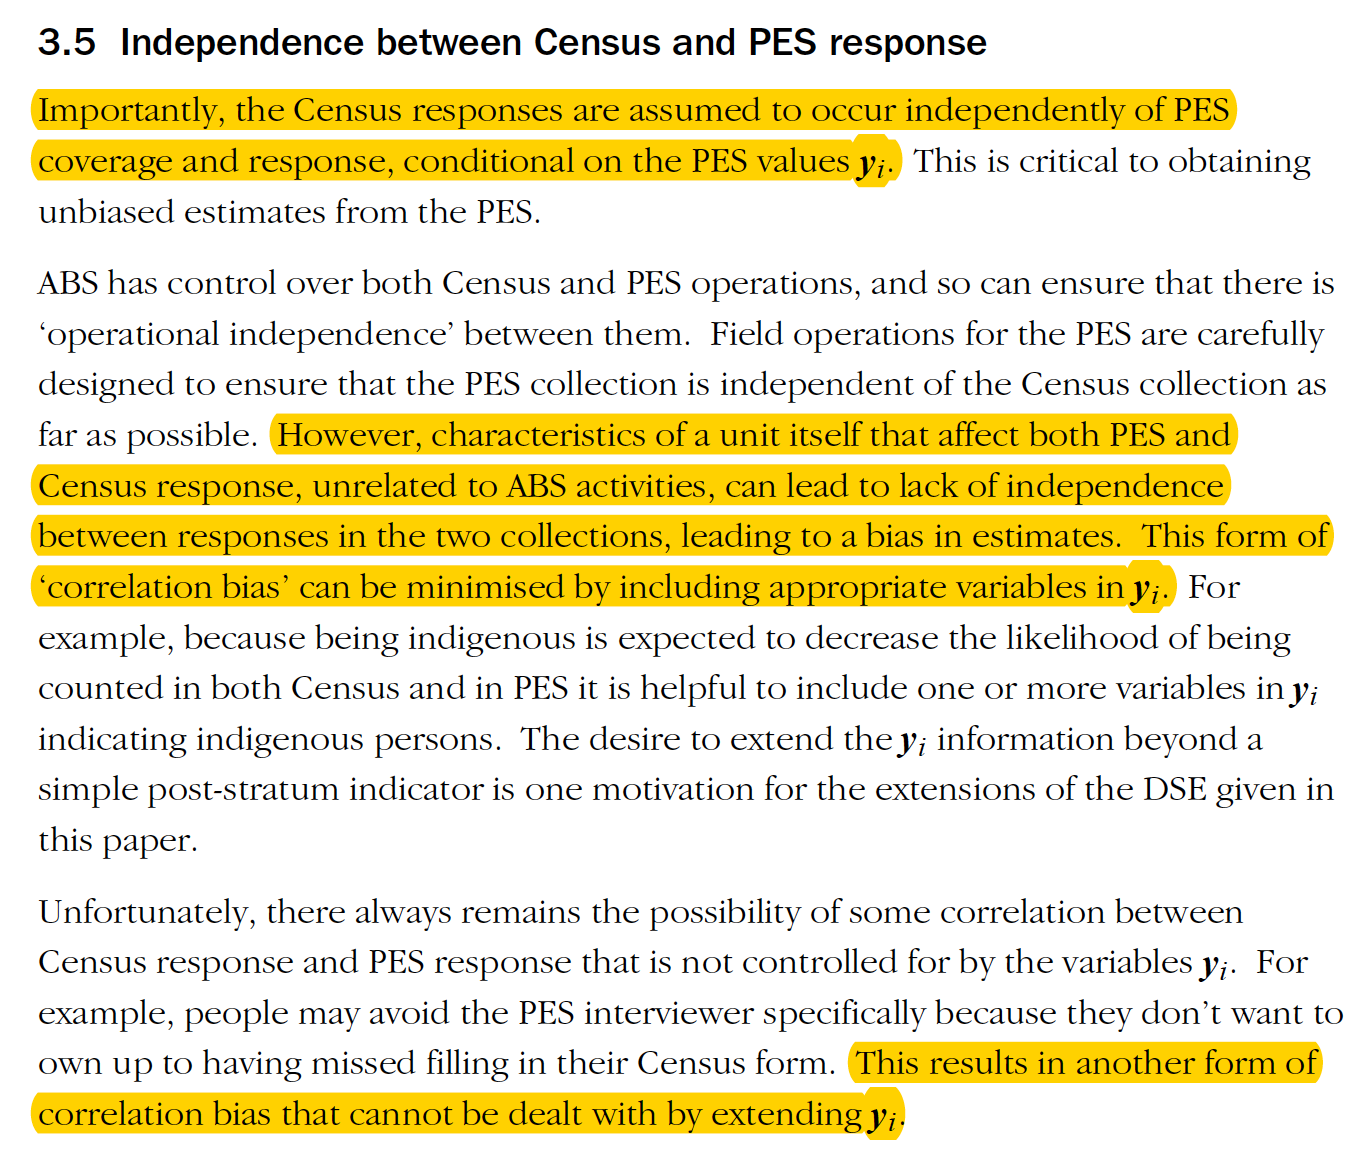 The method that is used still relies upon the independence of the PES and Census responses, which would fail when one person is overseas for both